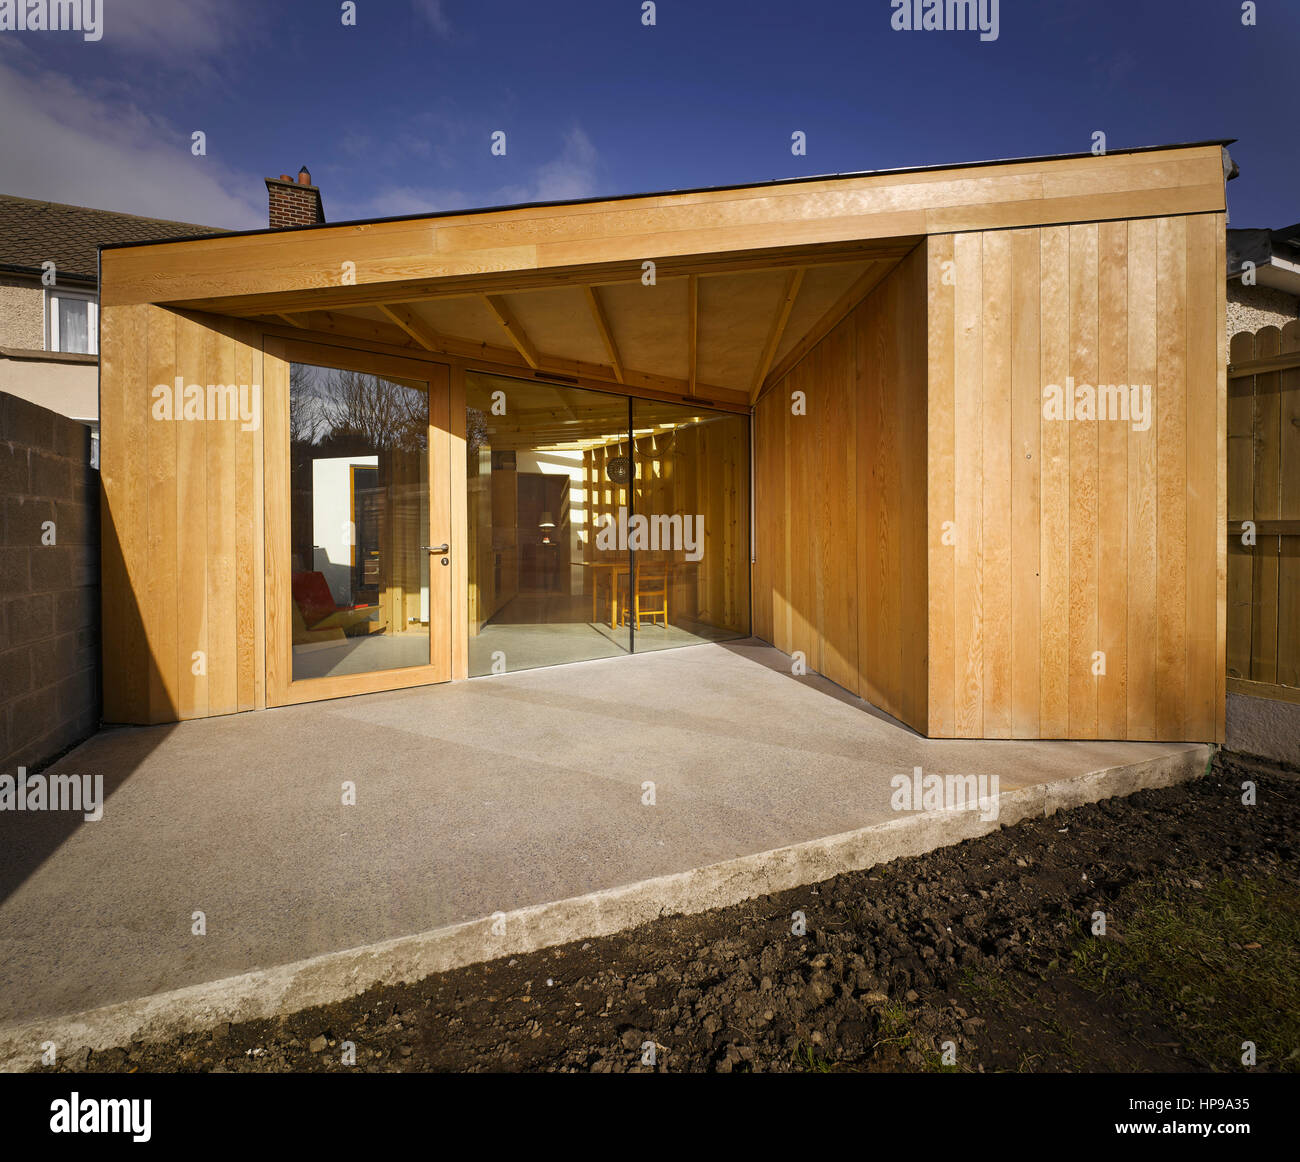 Exterior view of extension showing light in courtyard and through skylight. Rutland Avenue, Crumlin, Ireland. Architect: - Stock Image